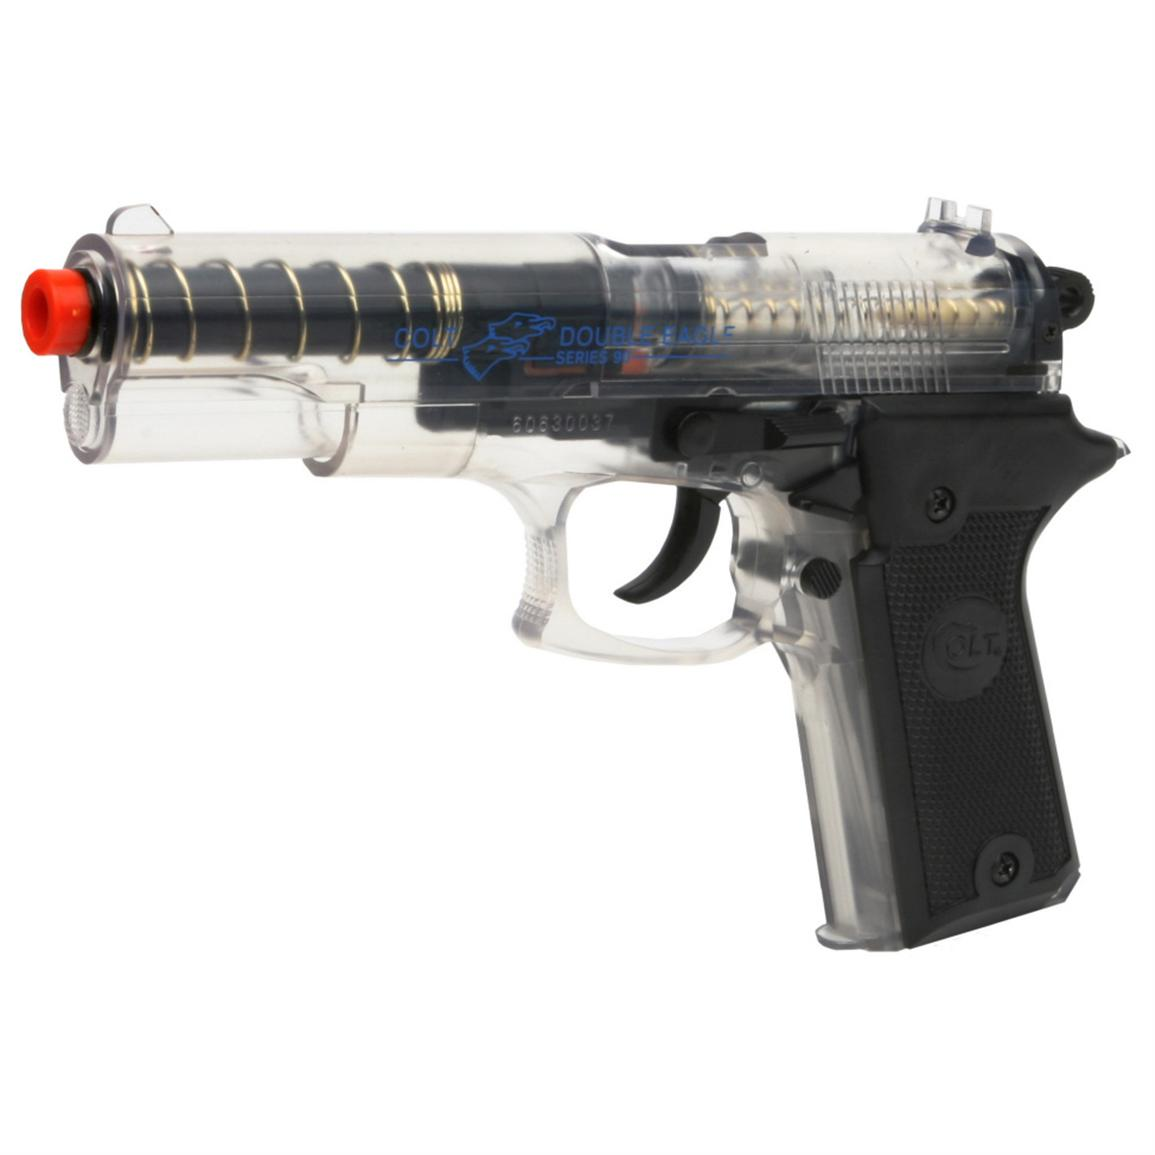 Colt® Double Eagle Spring-powered Airsoft Pistol from Palco®